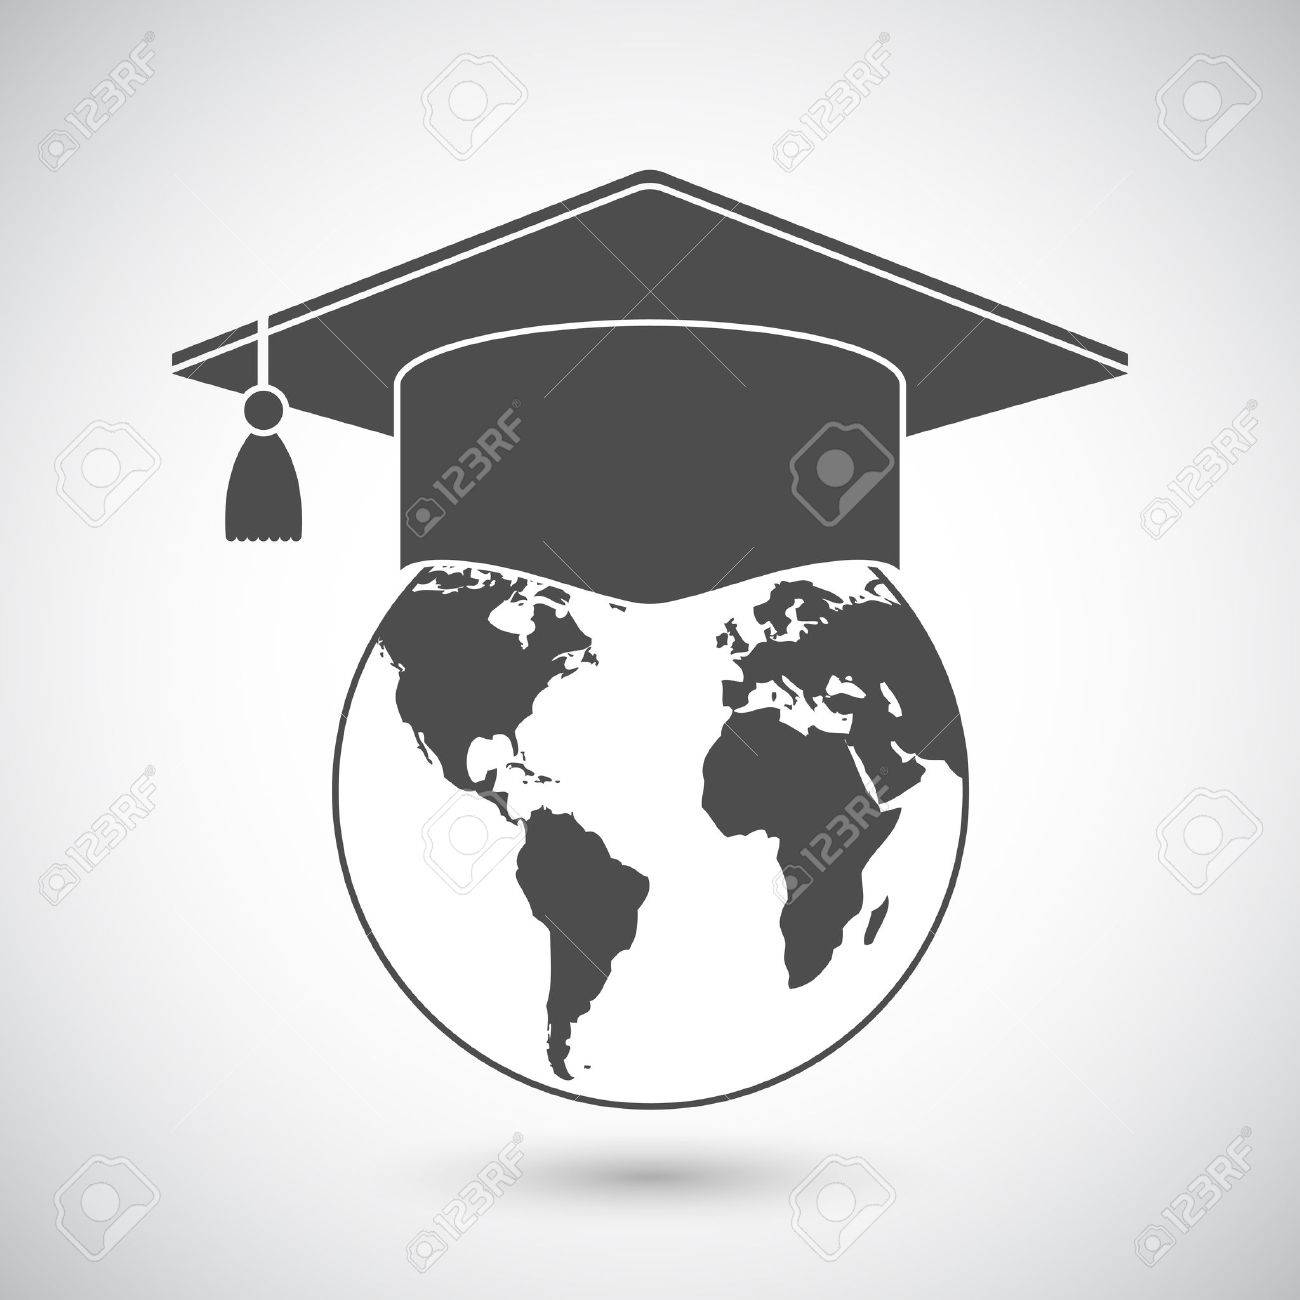 Graduation Cap Or Mortar Board On Top Of World Globe. Vector ...